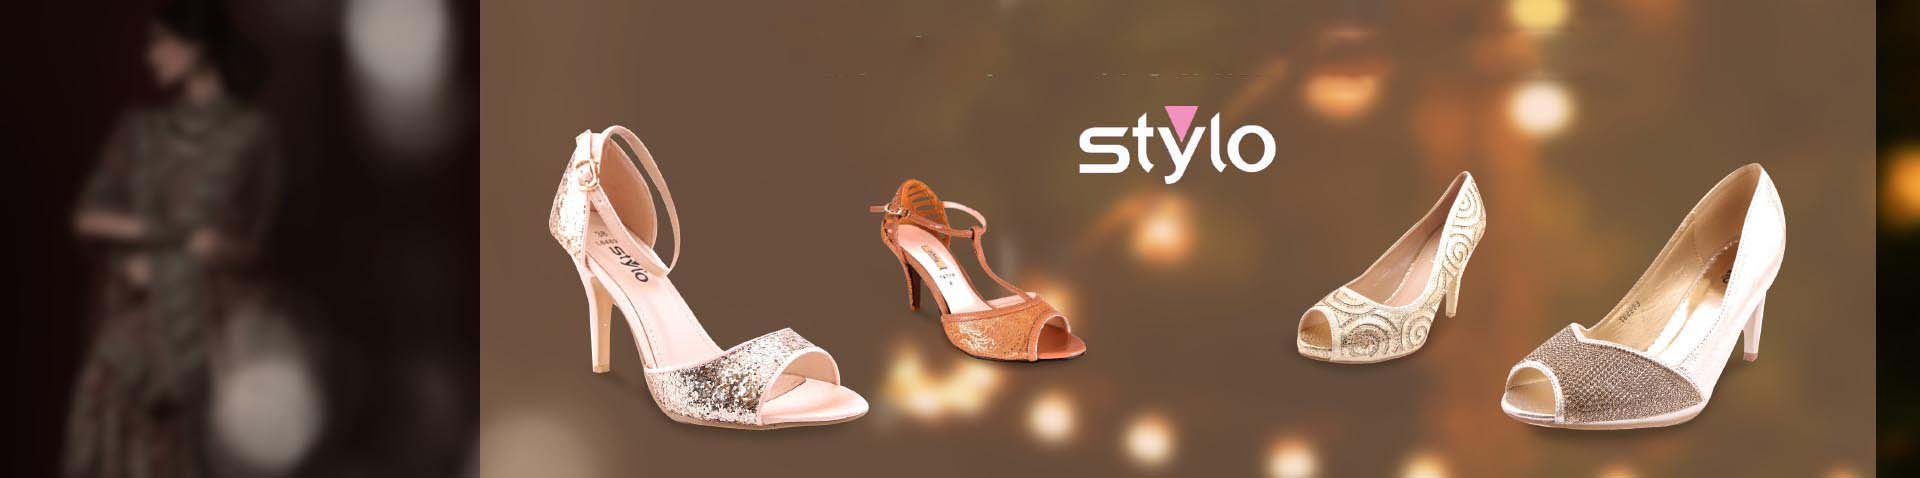 Stylo Shoes Wedding Footwear Collection For Women 2016-2017